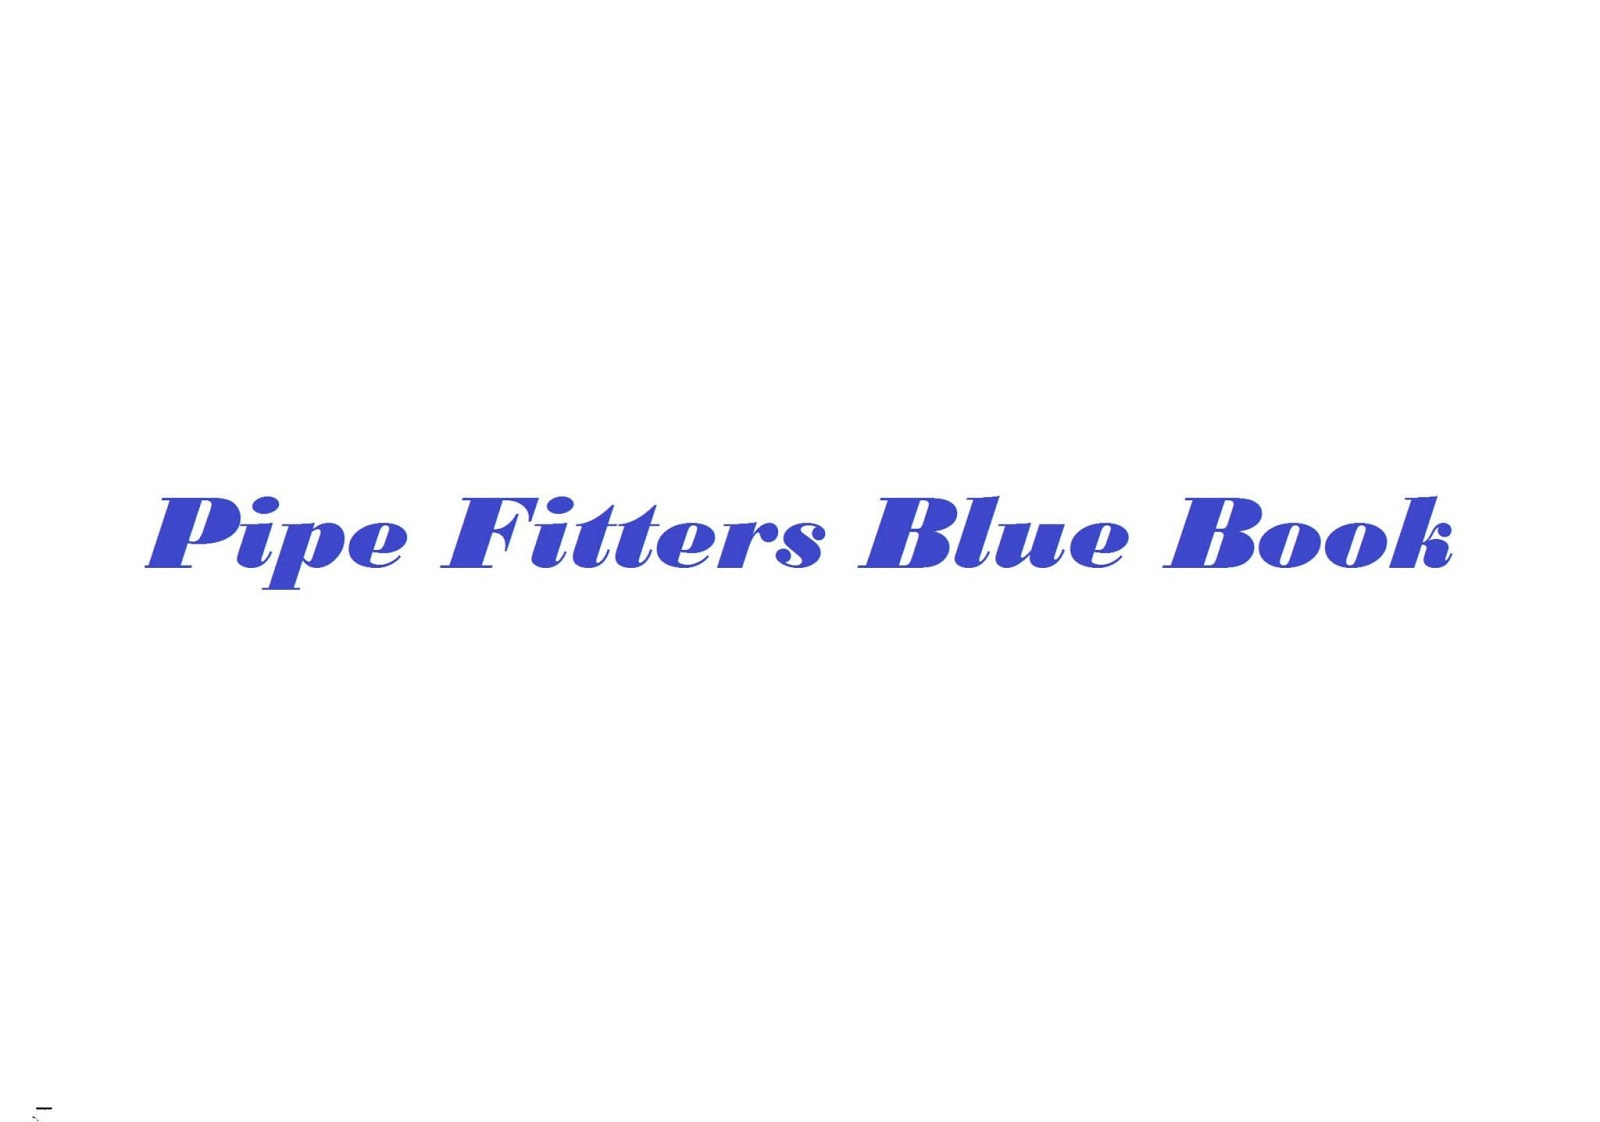 Construction Engineering: Pipe Fitters Blue Book